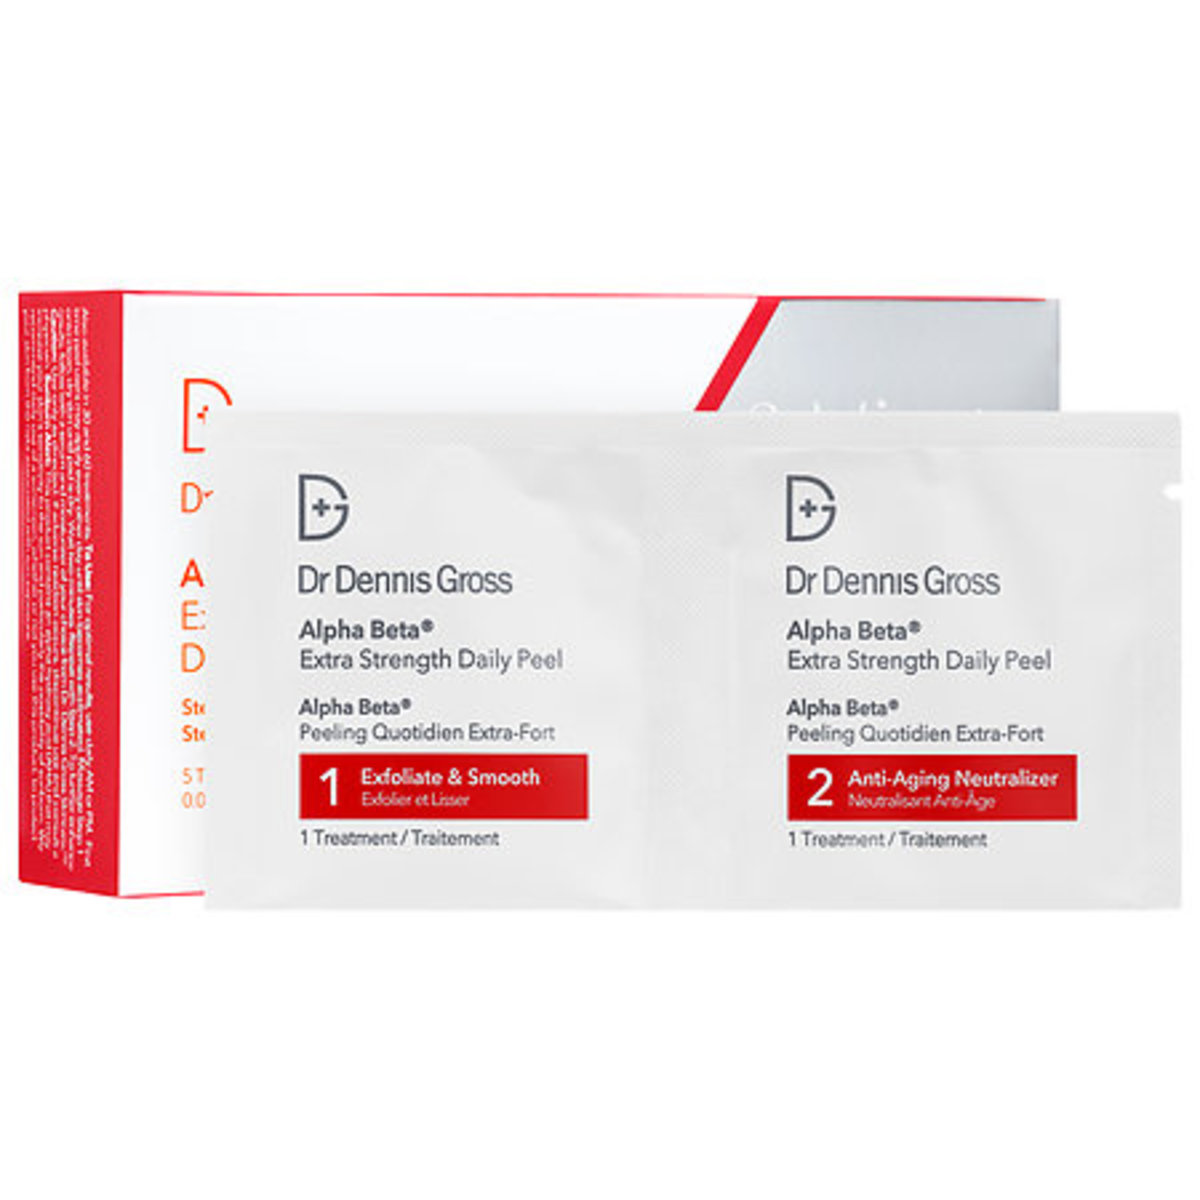 Dr. Dennis Gross Alpha Beta Extra Strength Daily Peel, $16 for five treatments, available at Sephora.